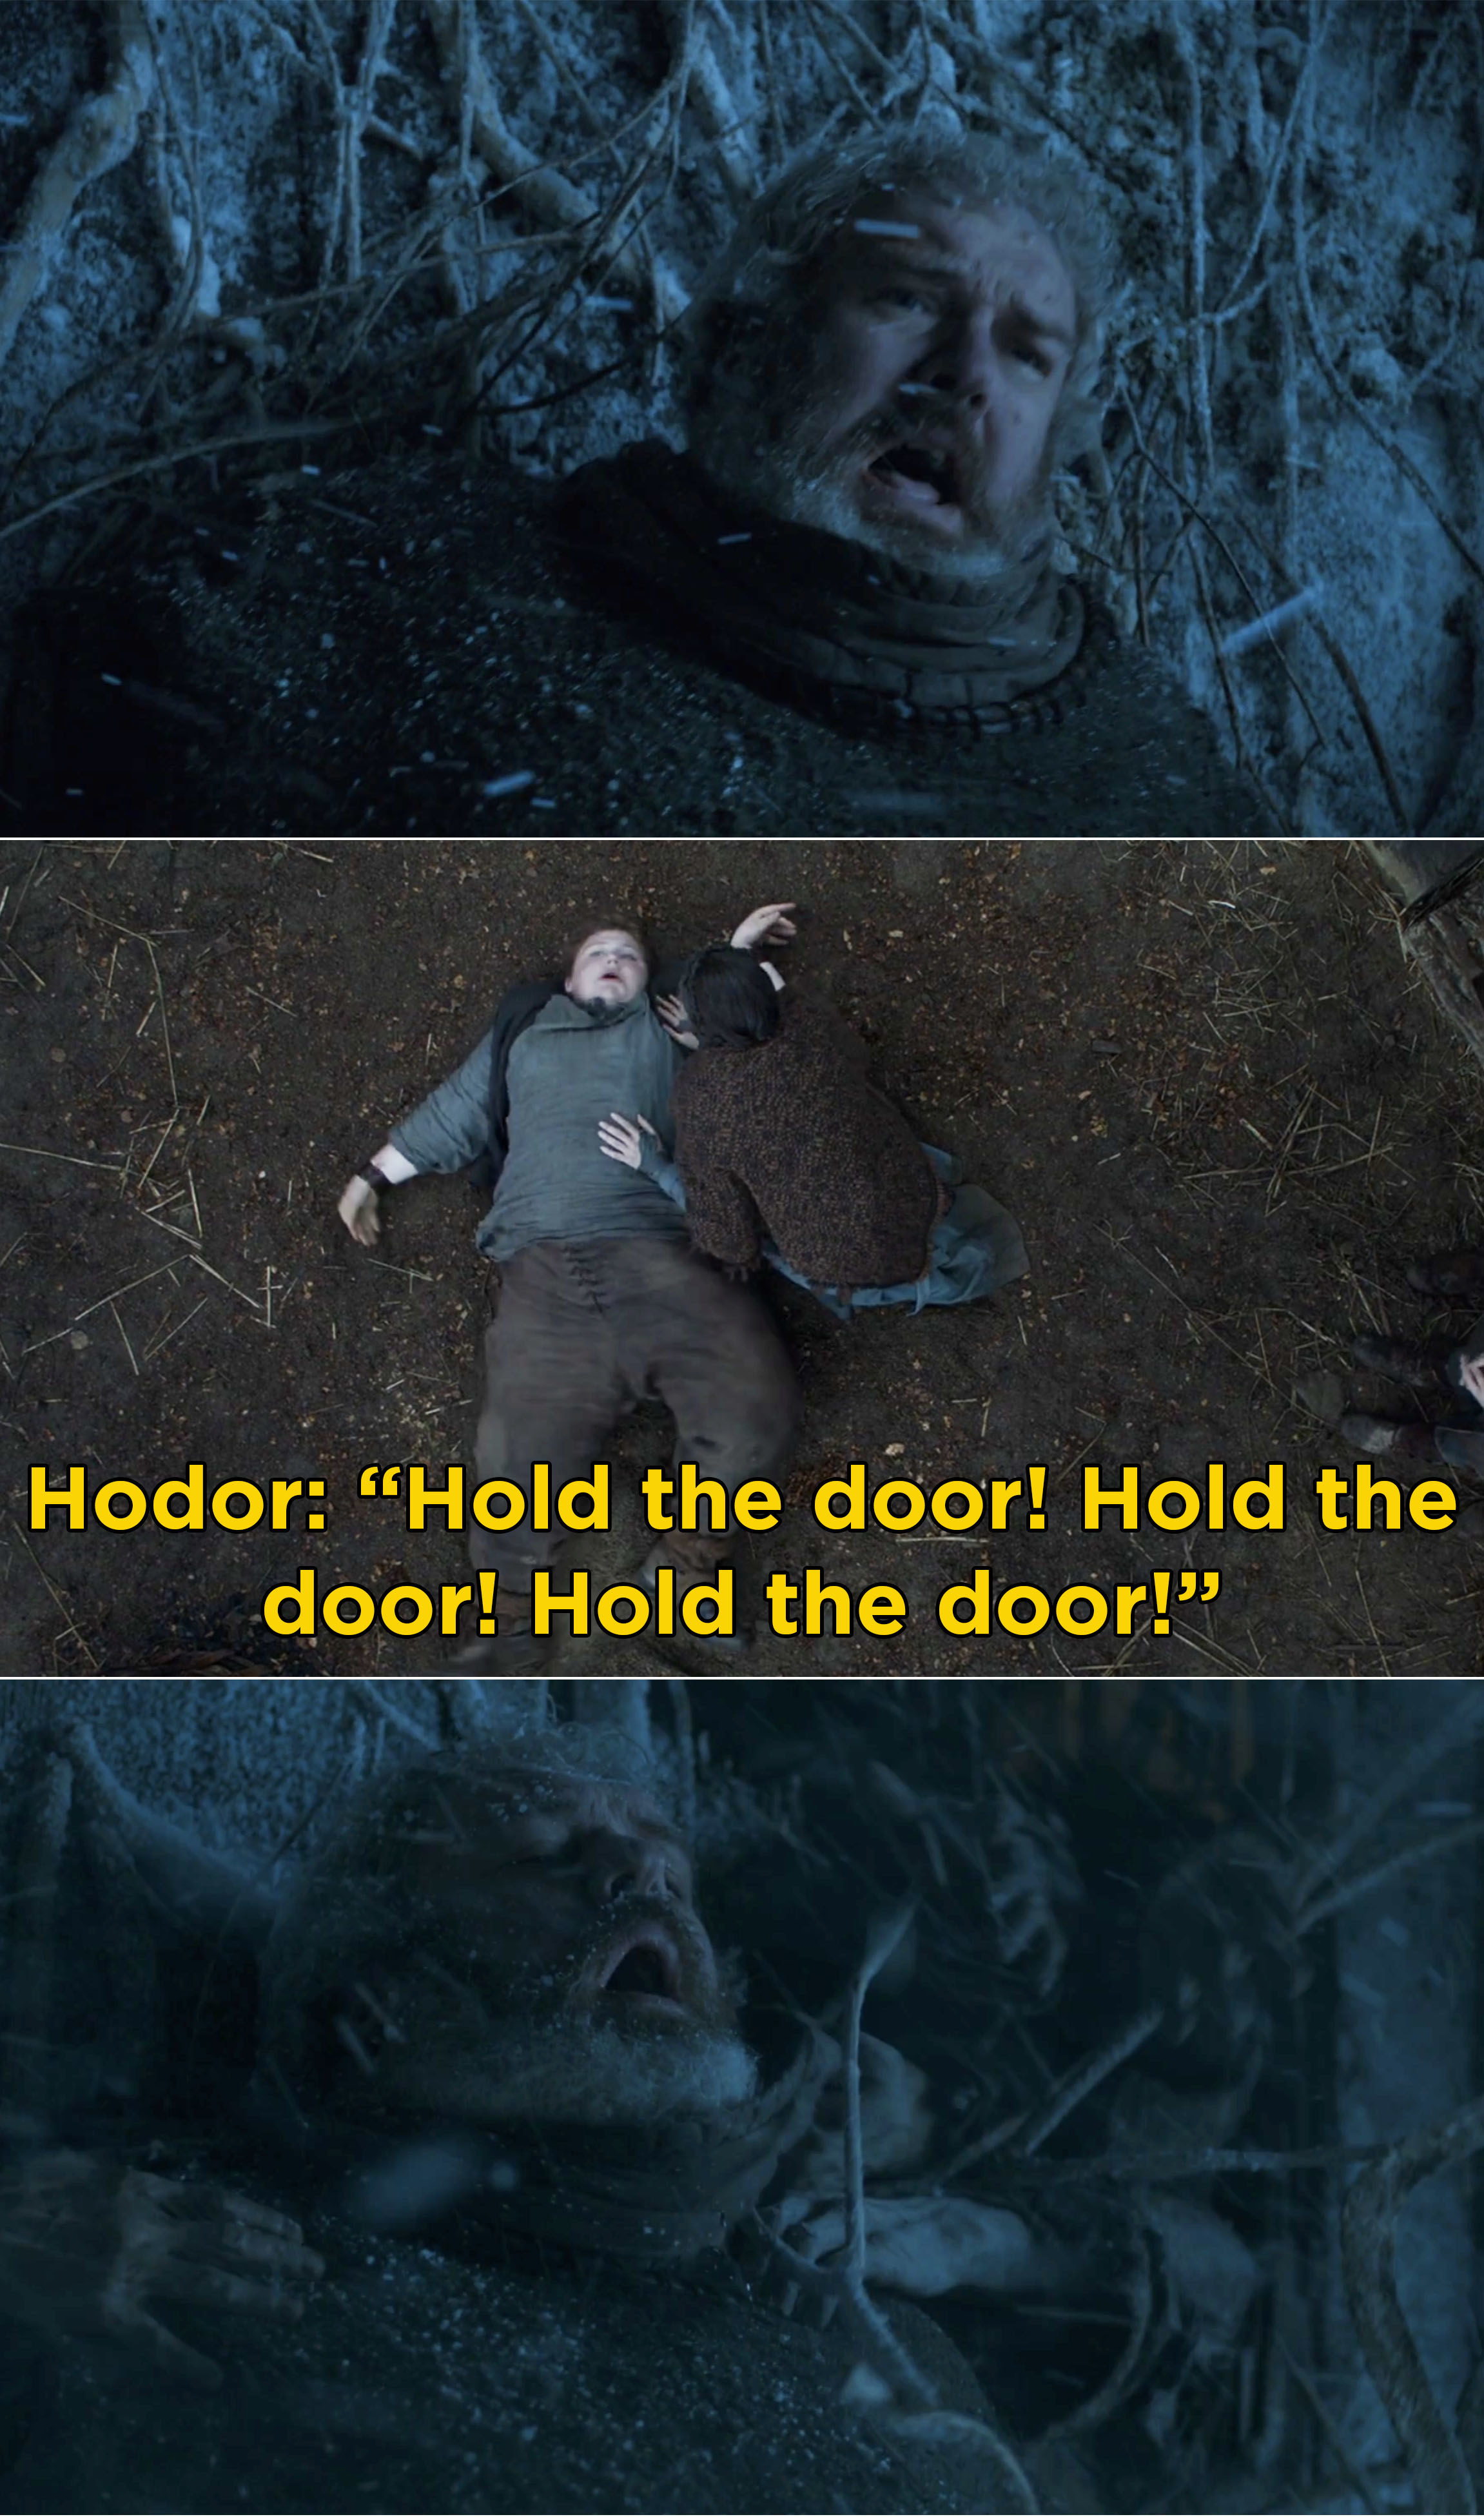 """Hodor trying to hold the door and when he's a young boy, Hodor having a seizure and screaming """"Hold the door! Hold the door! Hold the door!"""""""